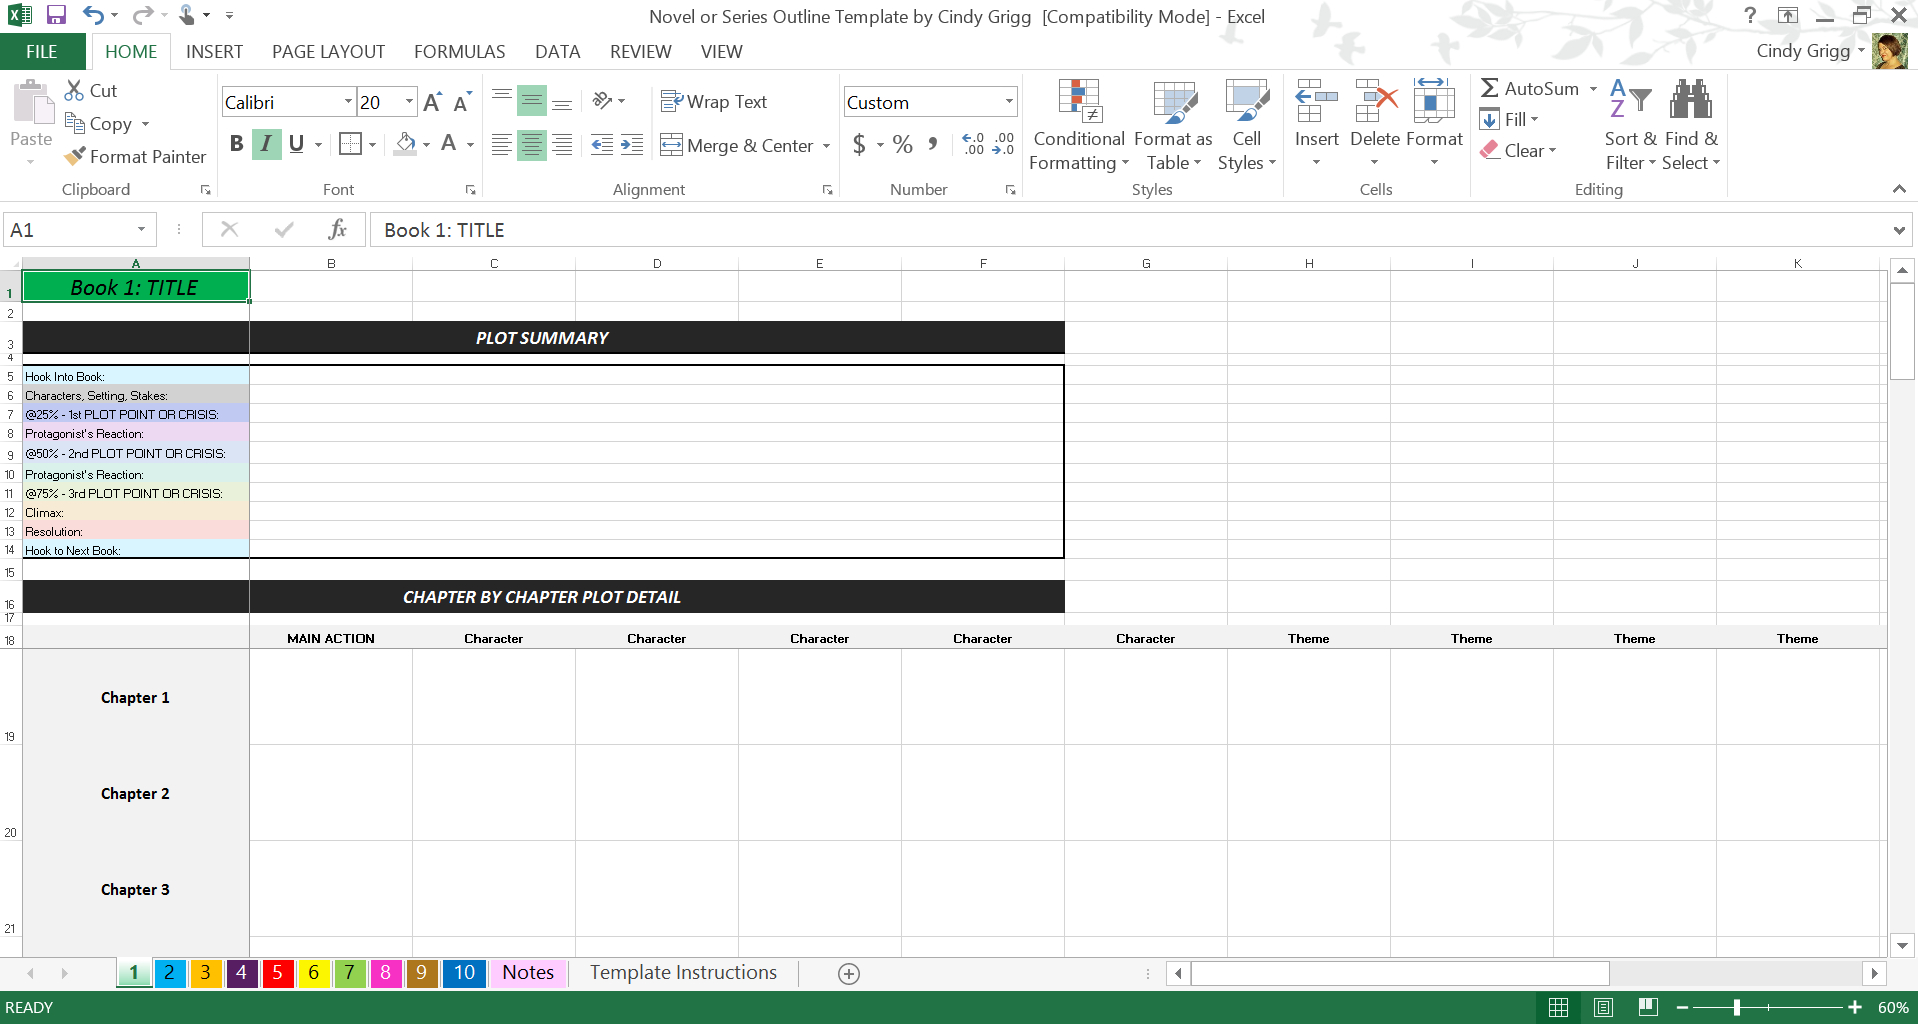 Novel Spreadsheet Template Throughout Free Novel Or Series Outline Template Inspiredj.k. Rowling